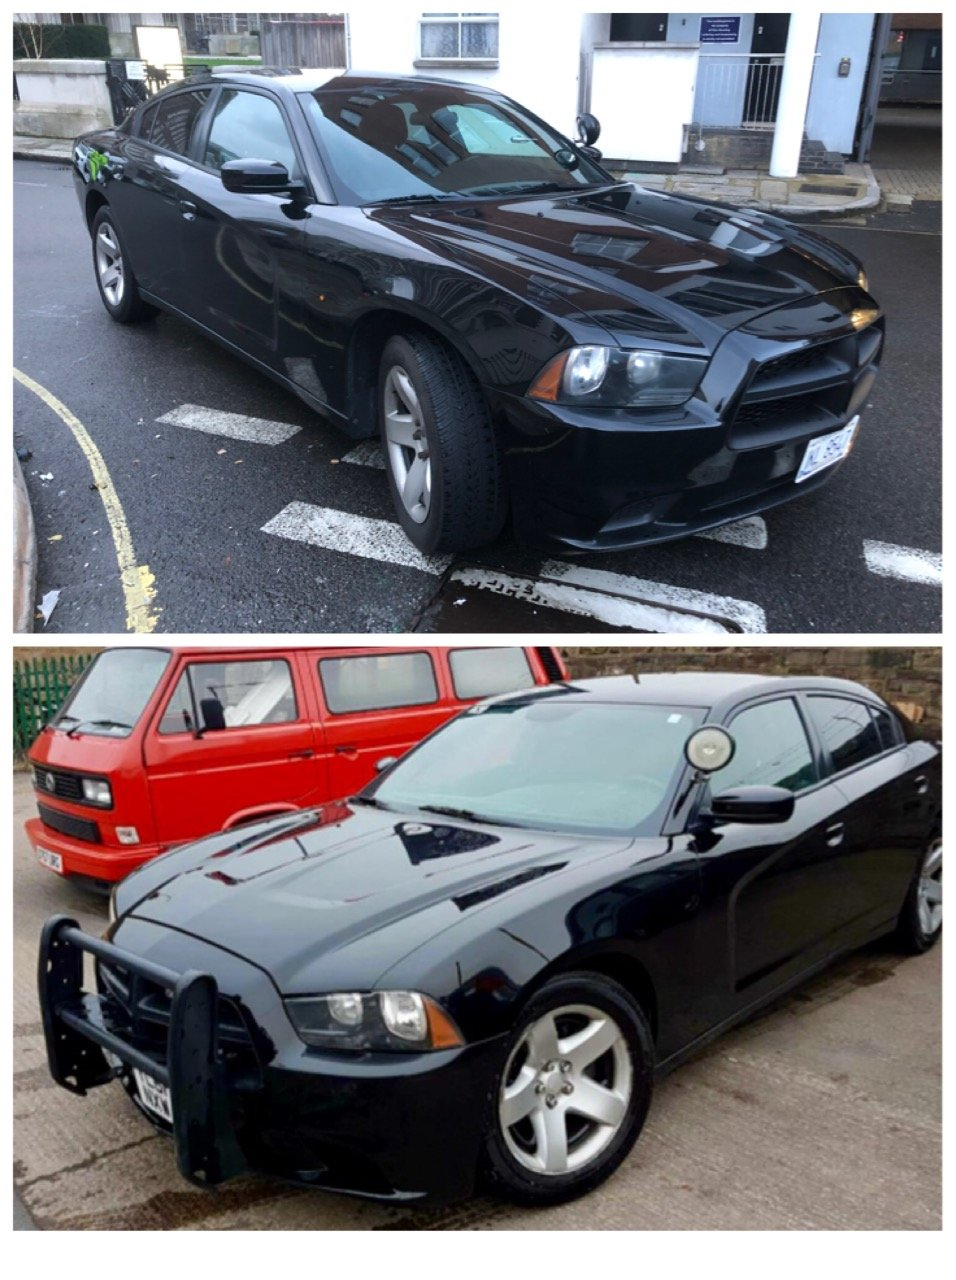 2014 Dodge Charger Pursuit V8 Hemi For Sale (picture 2 of 10)